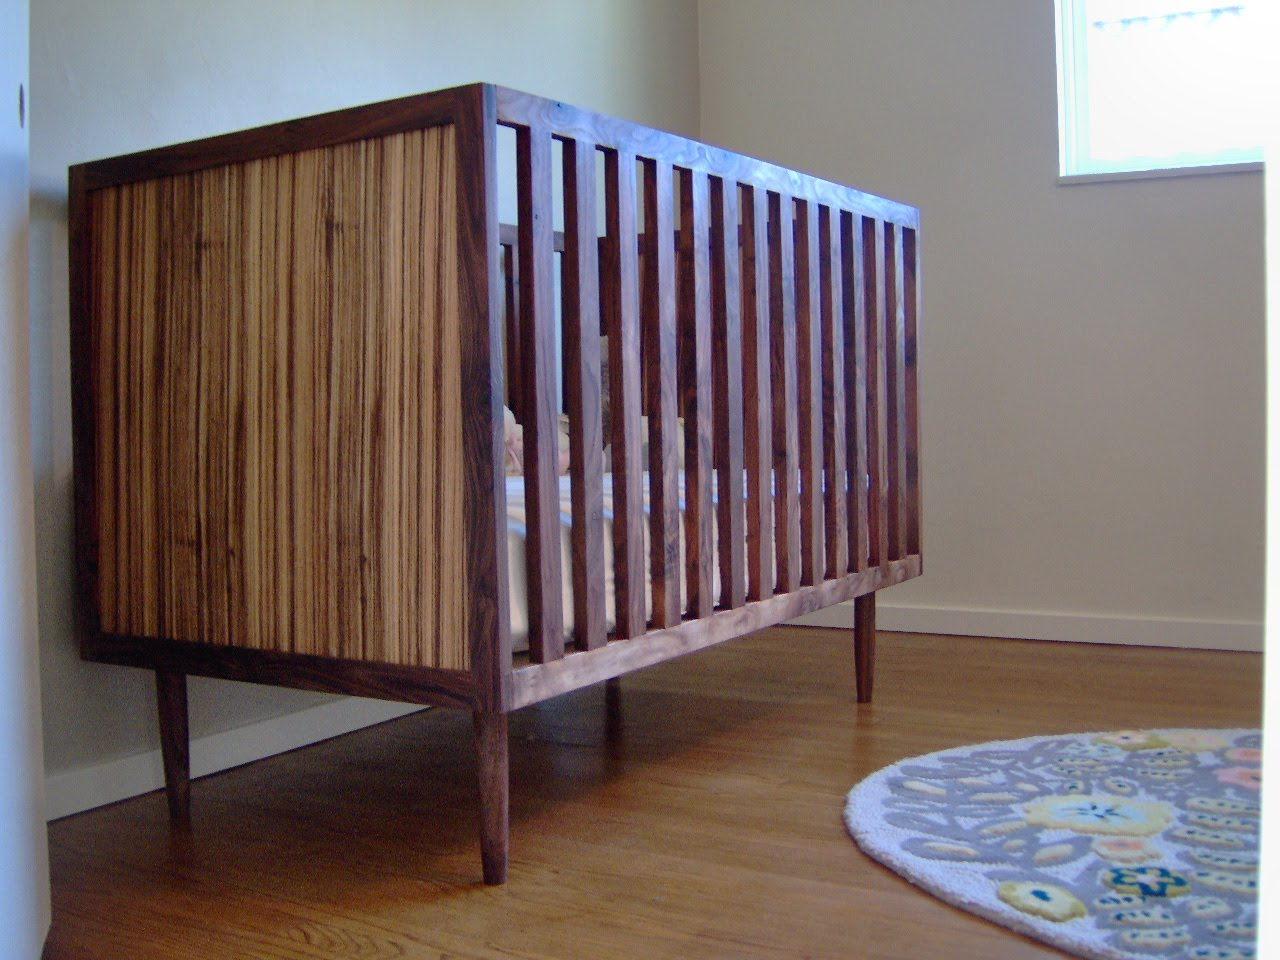 abc expo img crib project modern nursery mid spotted kids newest century at cribs skylar collection